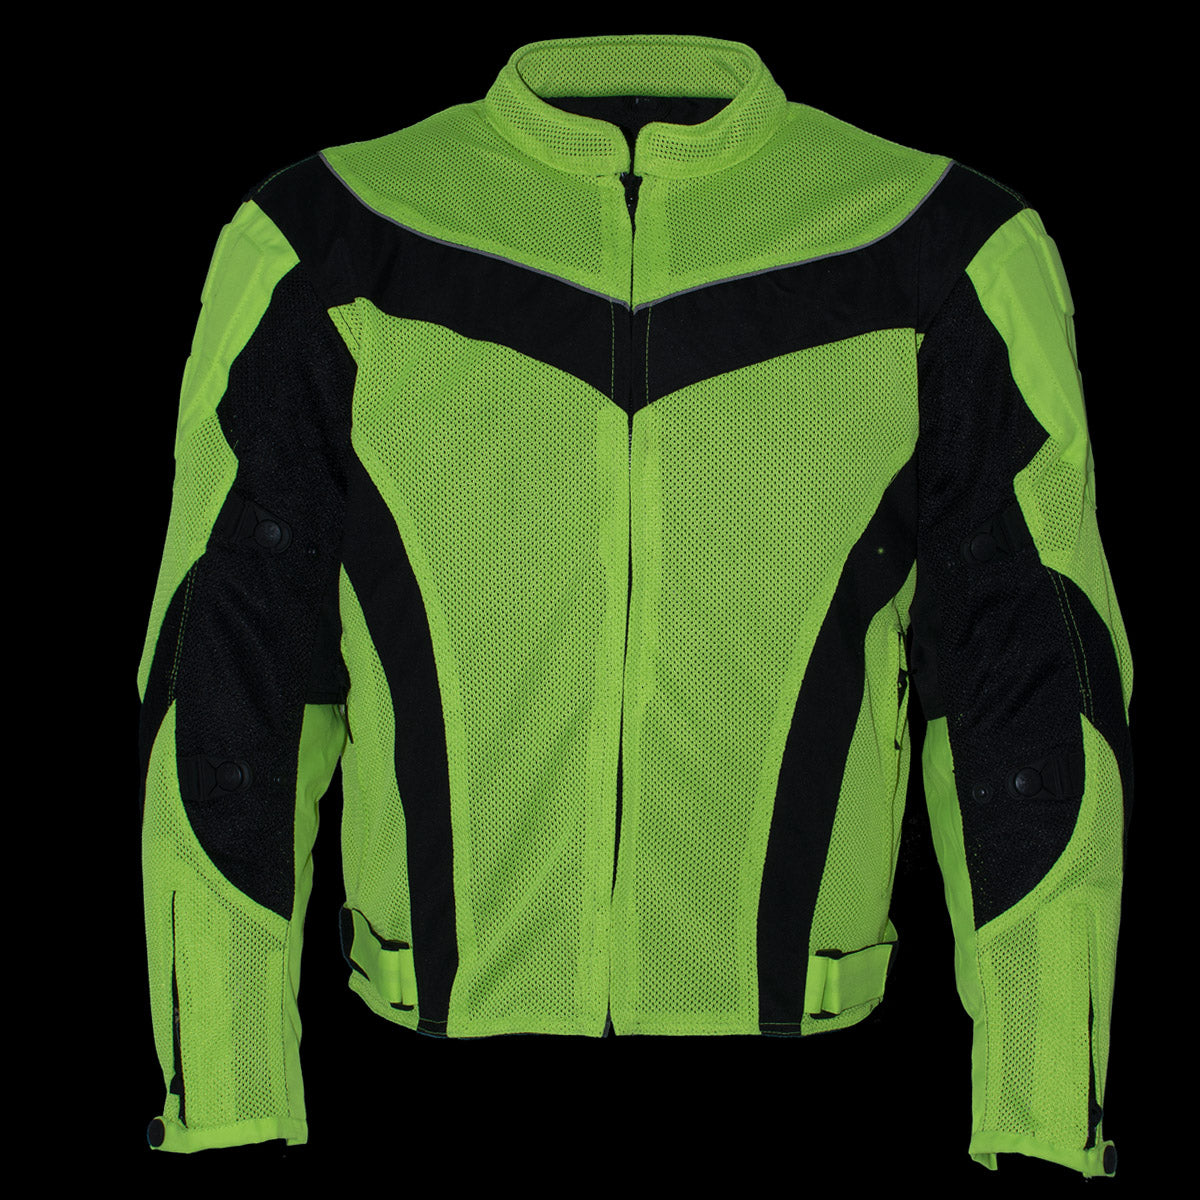 Xelement CF-6019-66 Men's 'Invasion' Neon Green Textile Armored